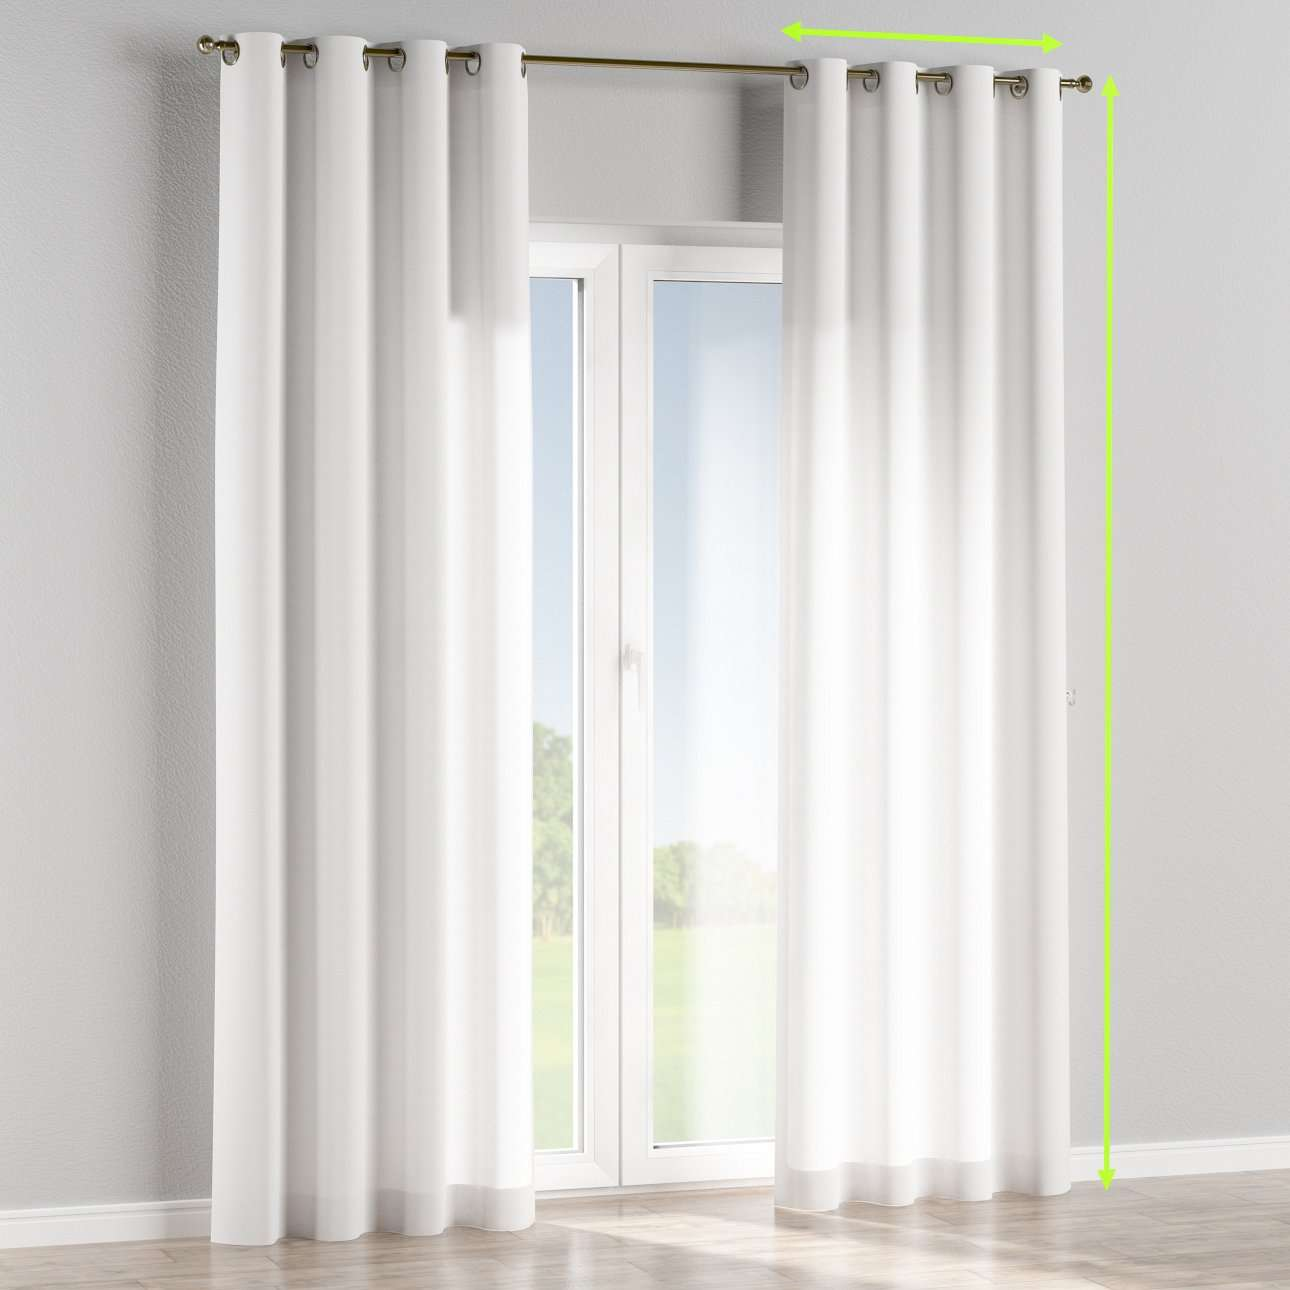 Eyelet curtains in collection Jupiter, fabric: 127-01